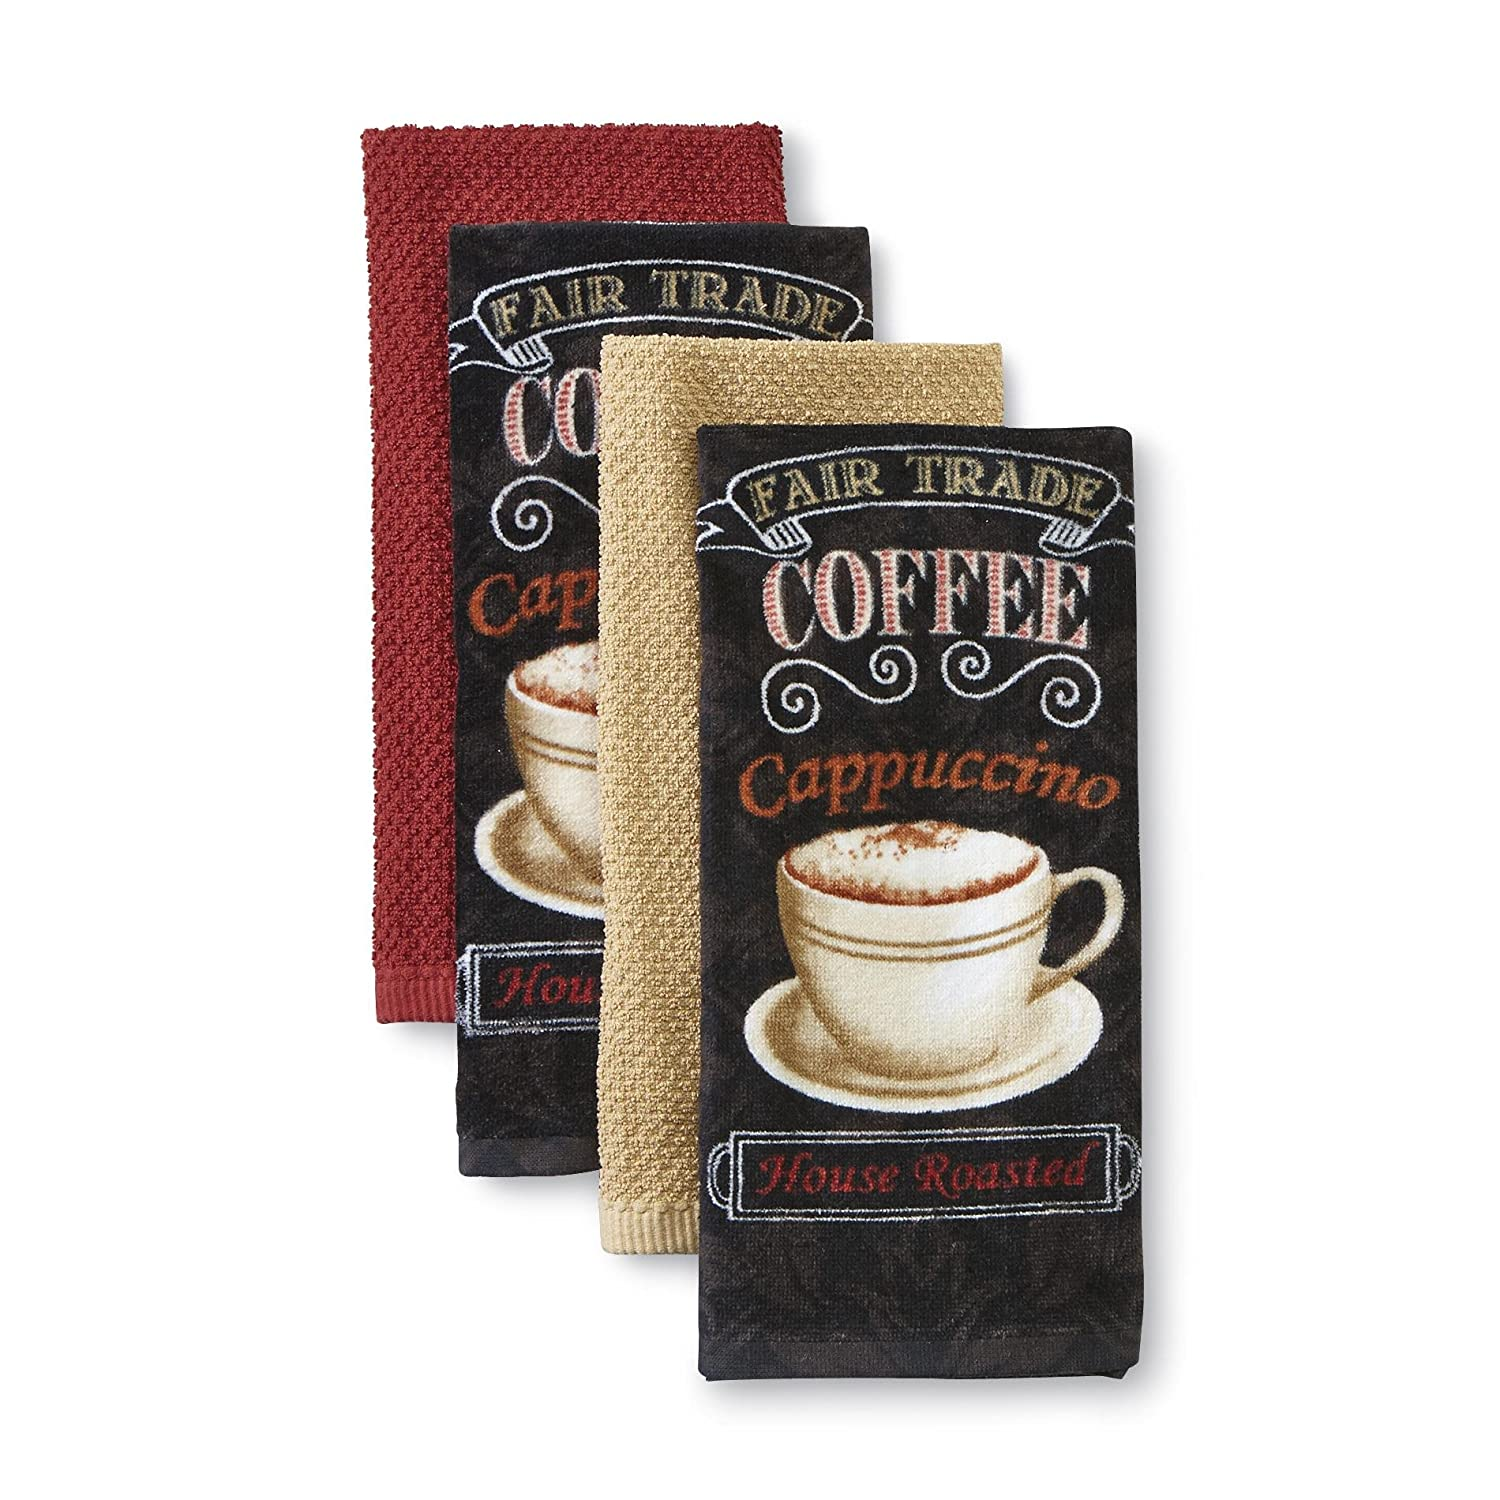 Essential Home 4-Piece Kitchen Towel Set - Morning Treat! - 100% Cotton Coffee Themed in Black, Tan and Rust (Black Coffee) 0085064434